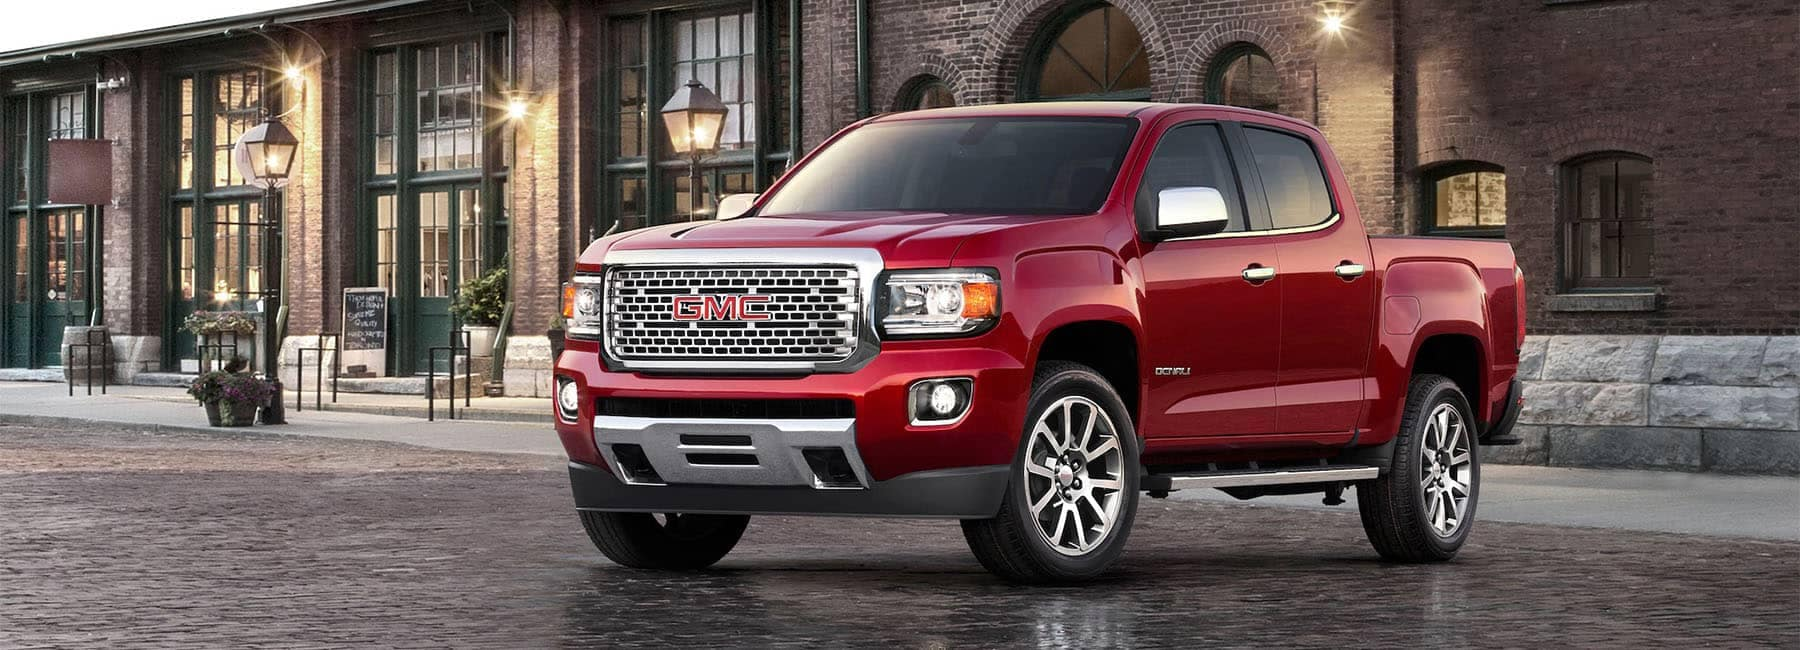 2020 Red GMC Canyon Denali Luxury Compact Pickup Truck Exterior Front Angle Shot